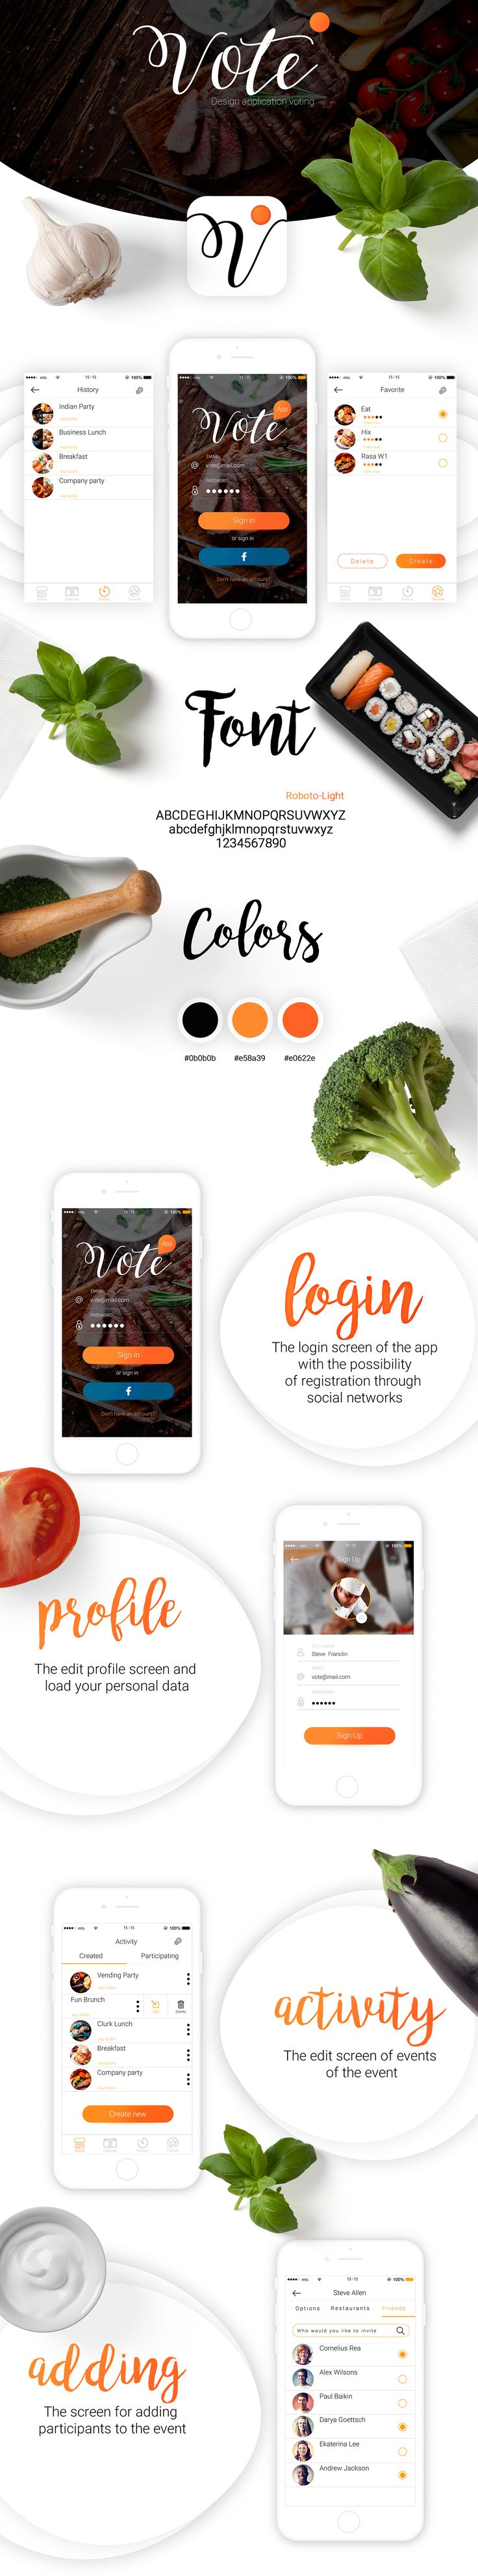 Design mobile app vote on Behance